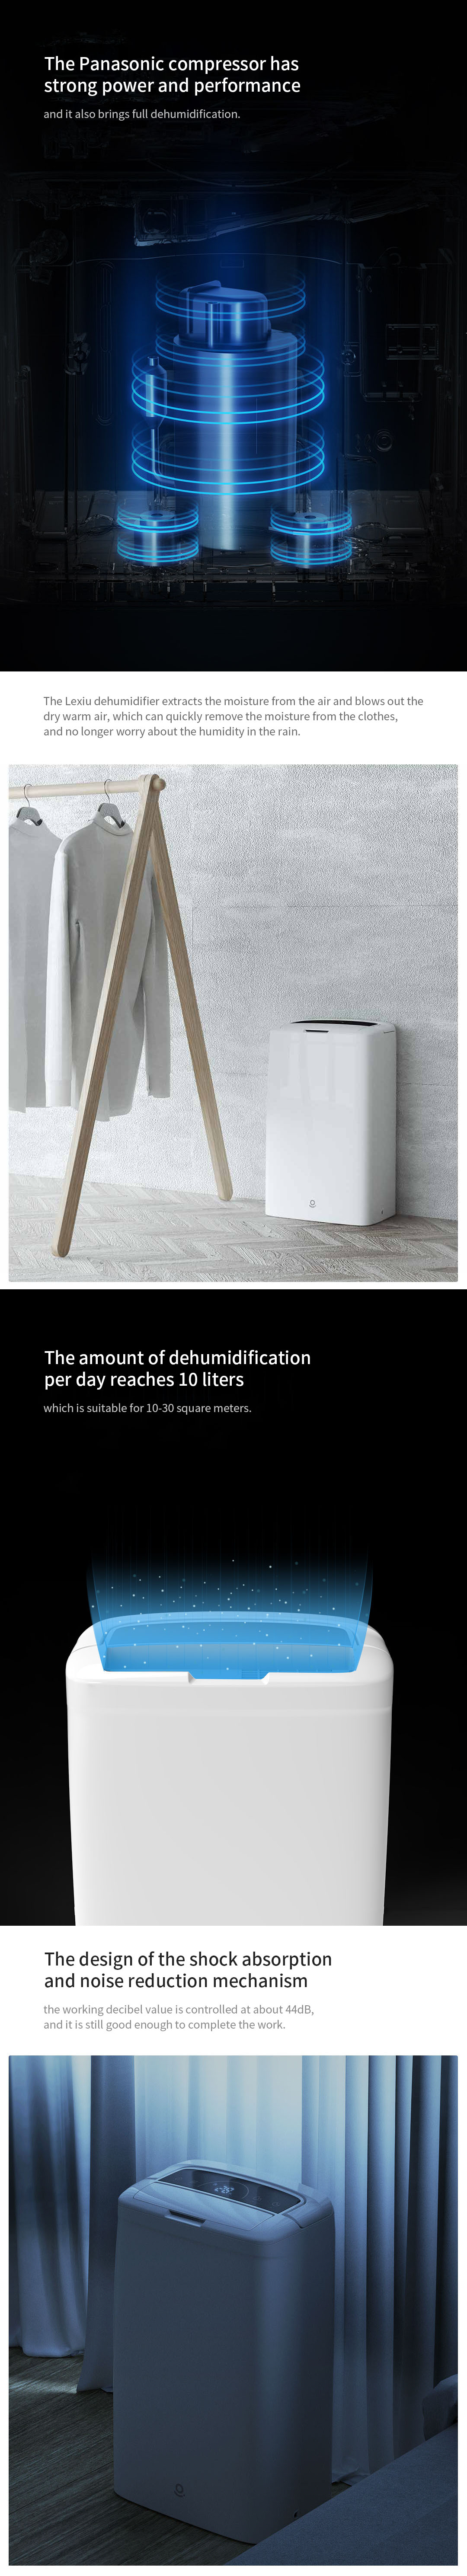 Lexiu Household Multi-functional Air Dehumidifier Dryer Machine with Strong Power Soft and Low Noise from Xiaomi Youpin